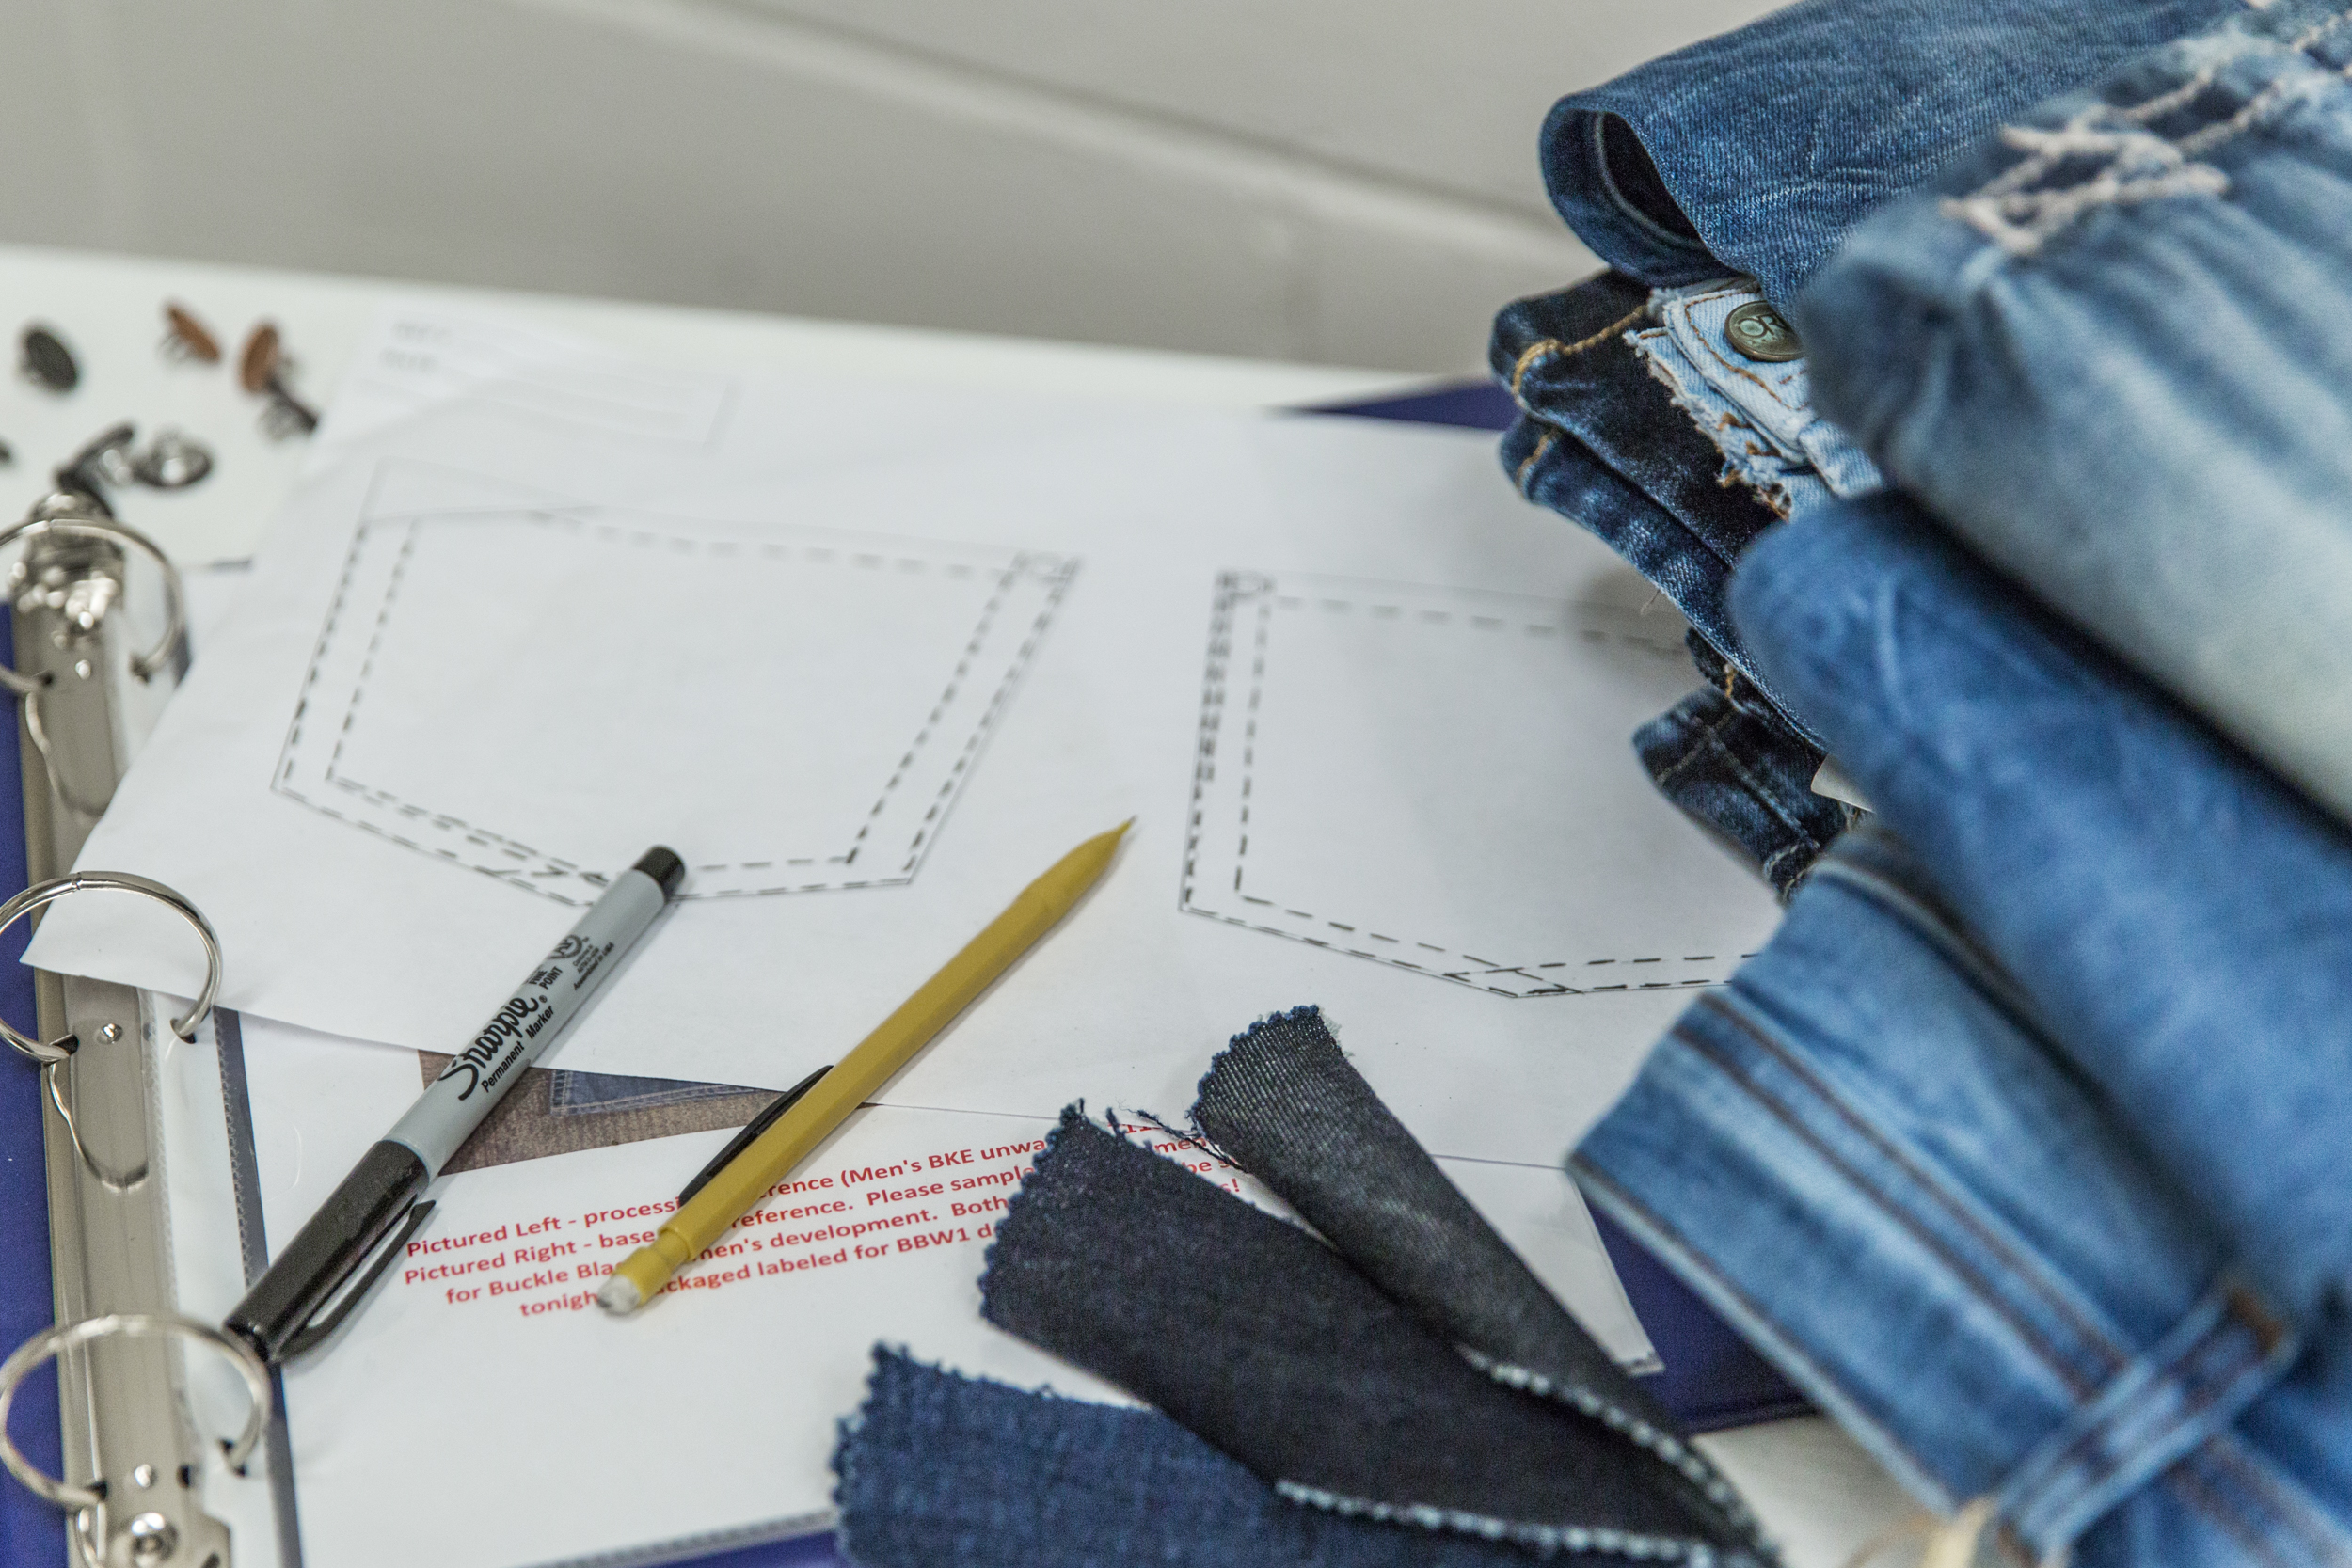 Photo of Buckle Black's first pocket designs and jeans sold.